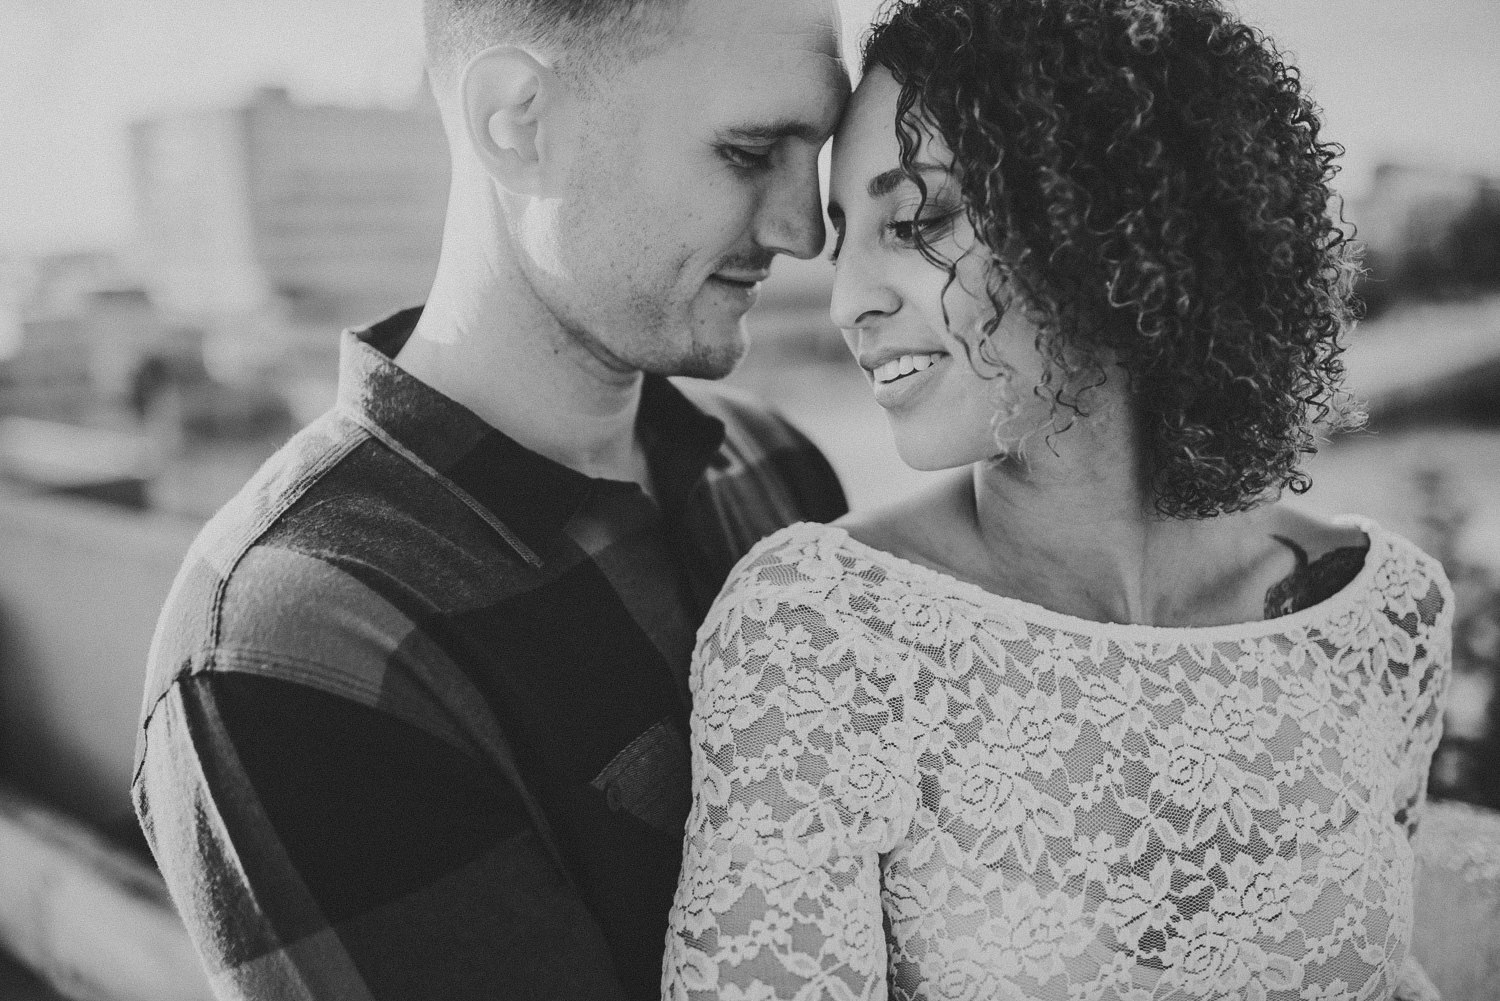 Dominique and Clay by Grand Rapids Michigan Photographer Ryan Inman - 30.jpg